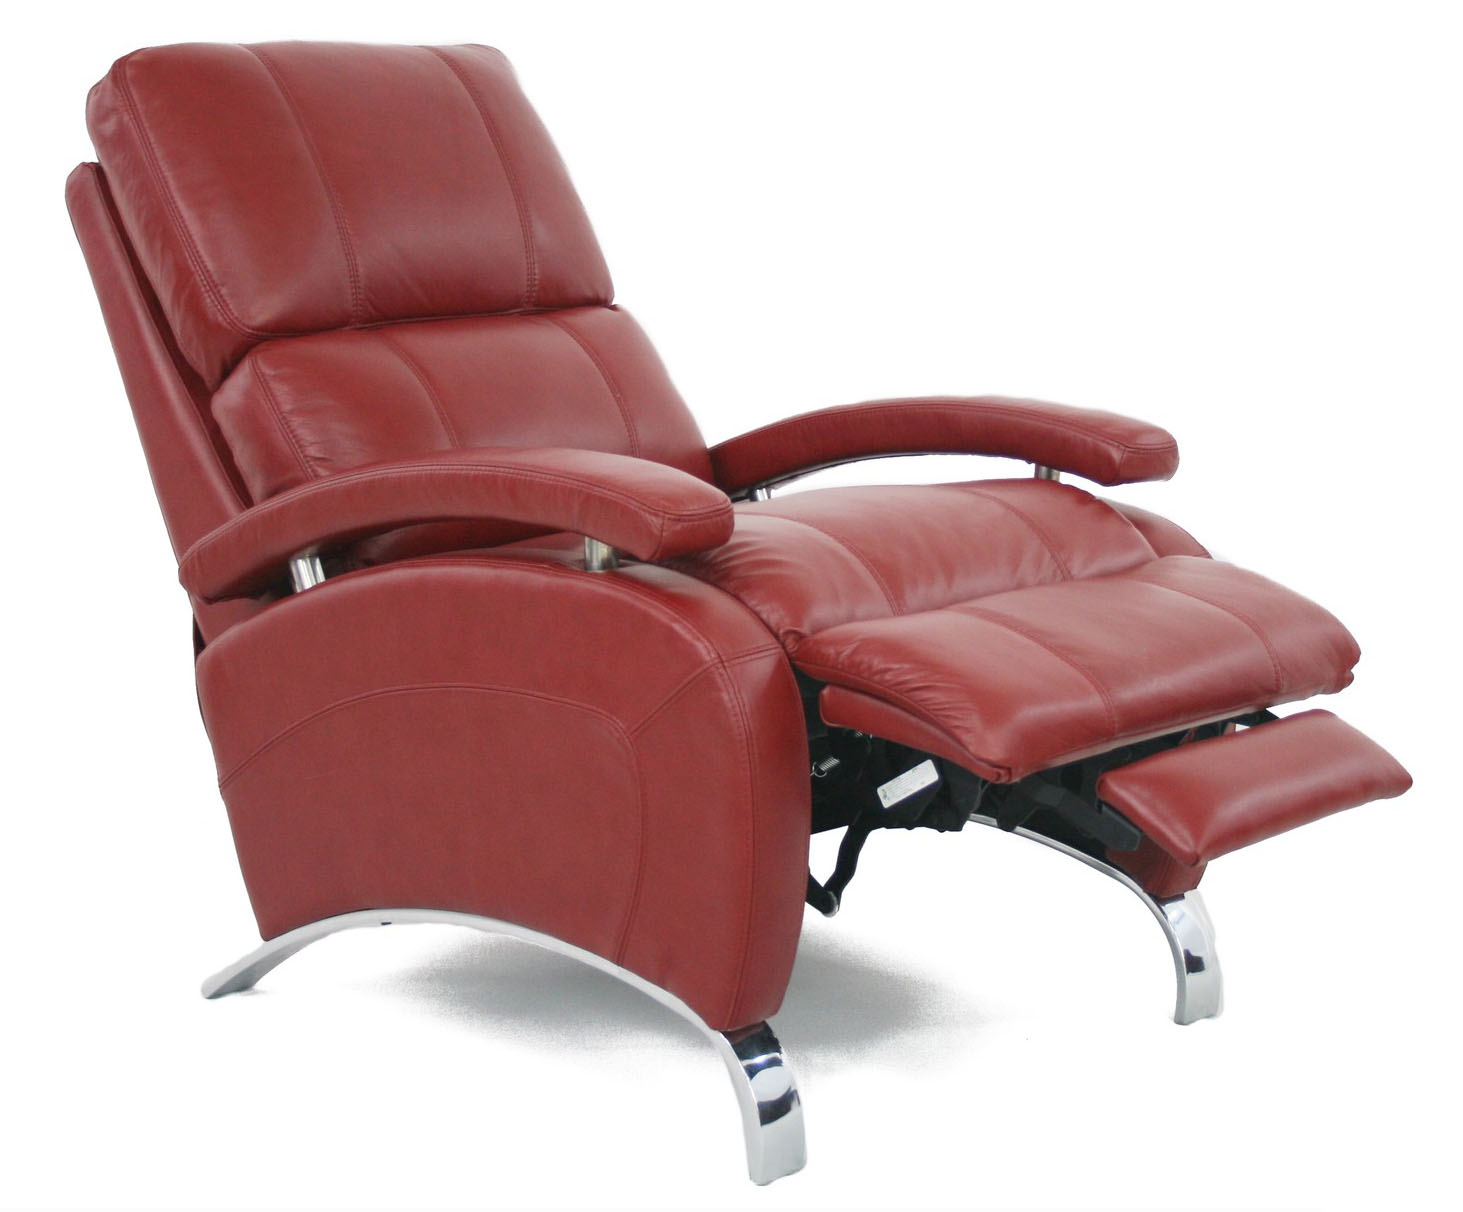 Reclining Chairs Barcalounger Oracle Ii Recliner Chair Leather Recliner